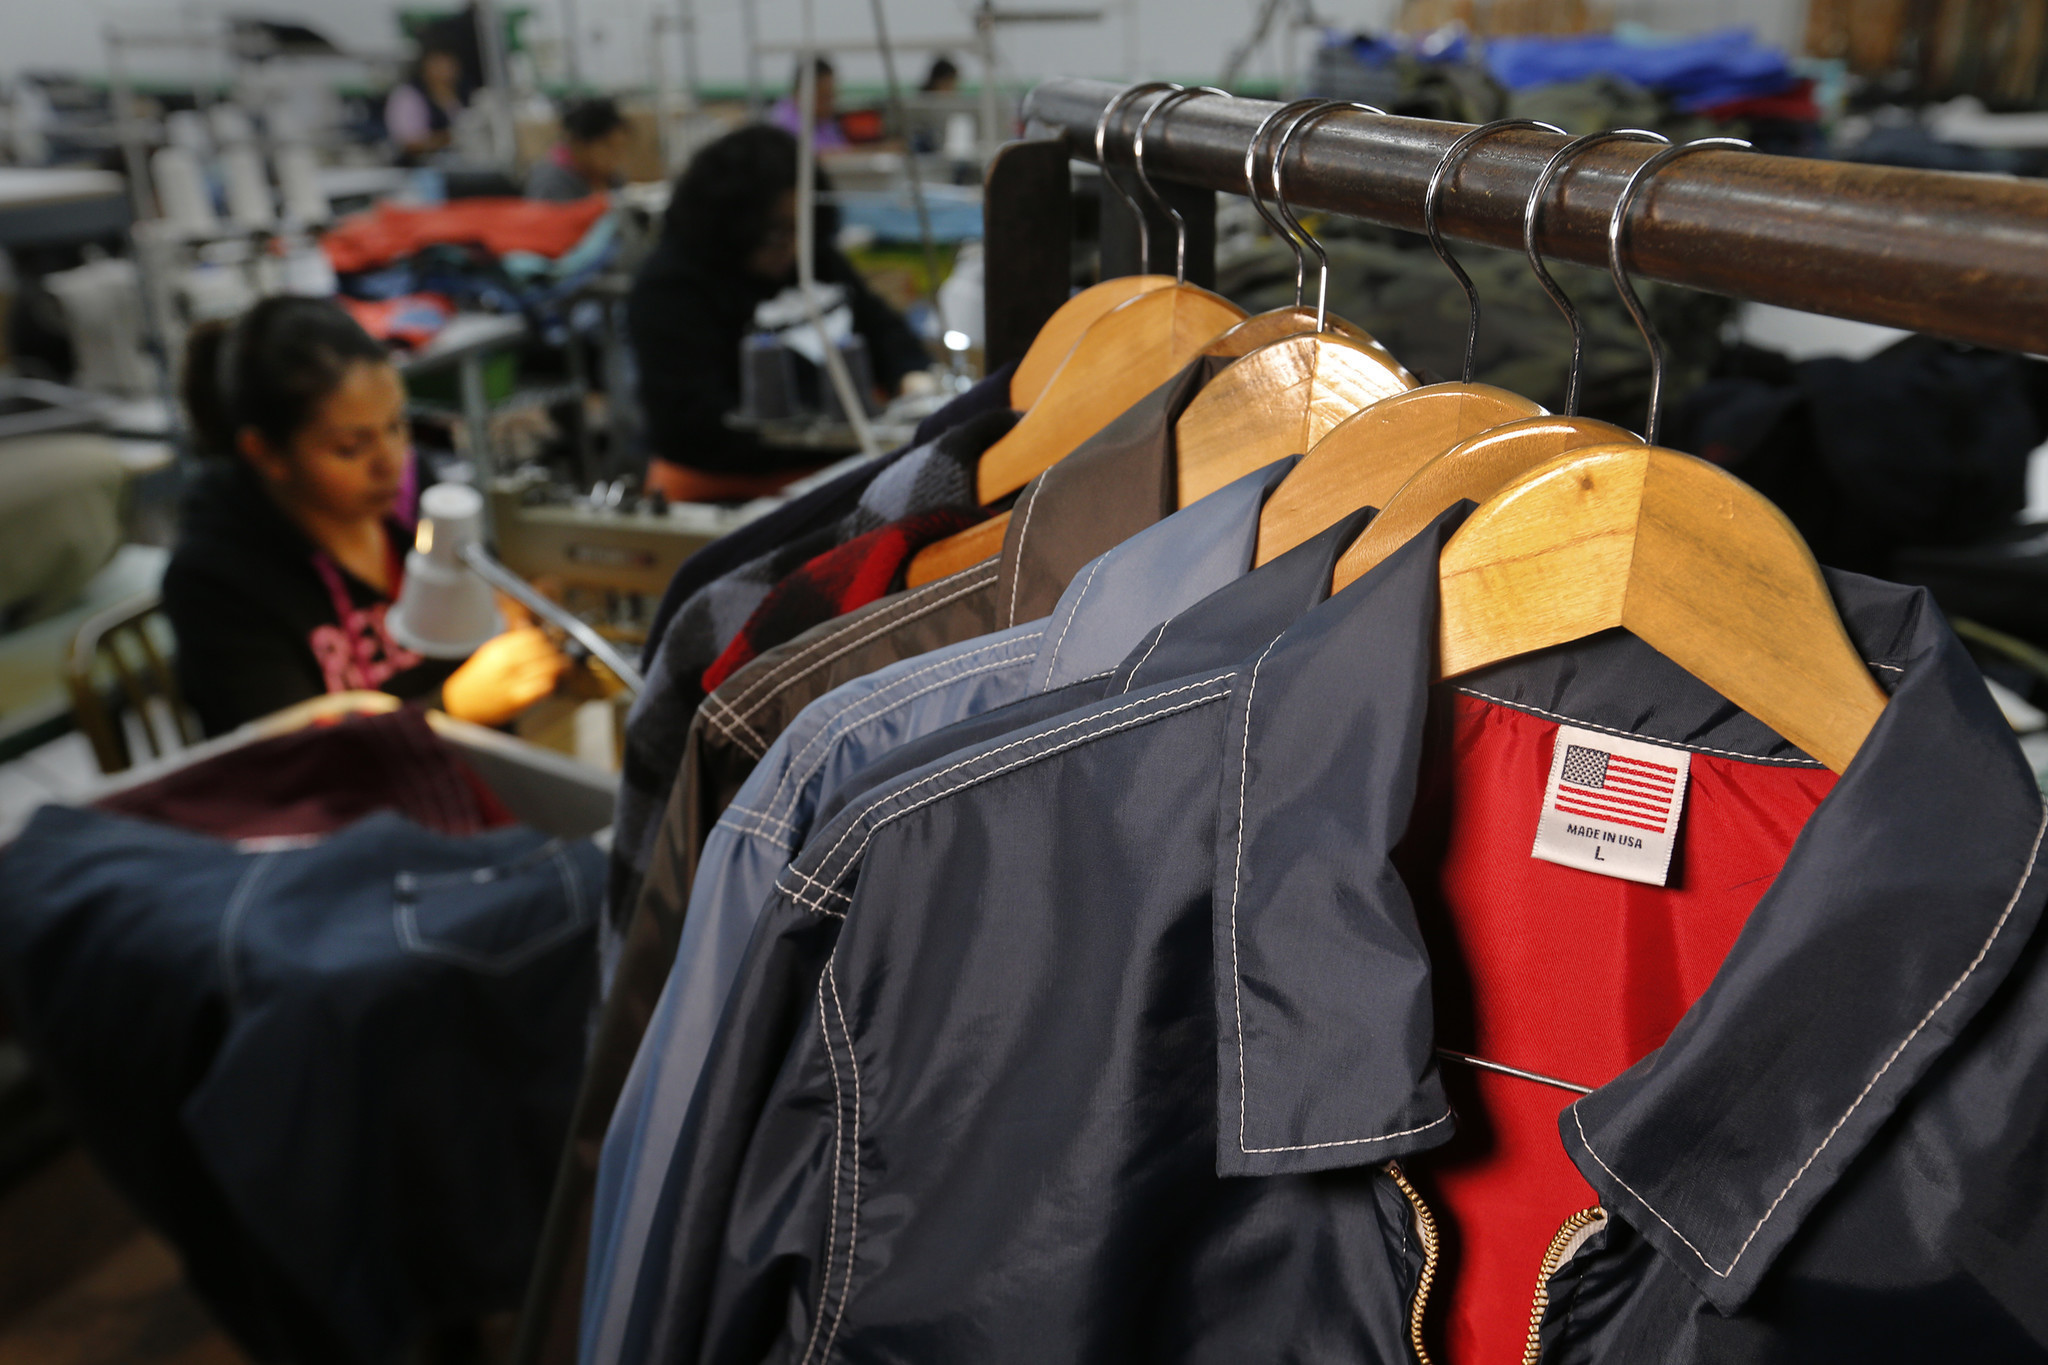 As Trump pushes for U.S. manufacturing, 'Made in America' is losing its luster in the fashion world